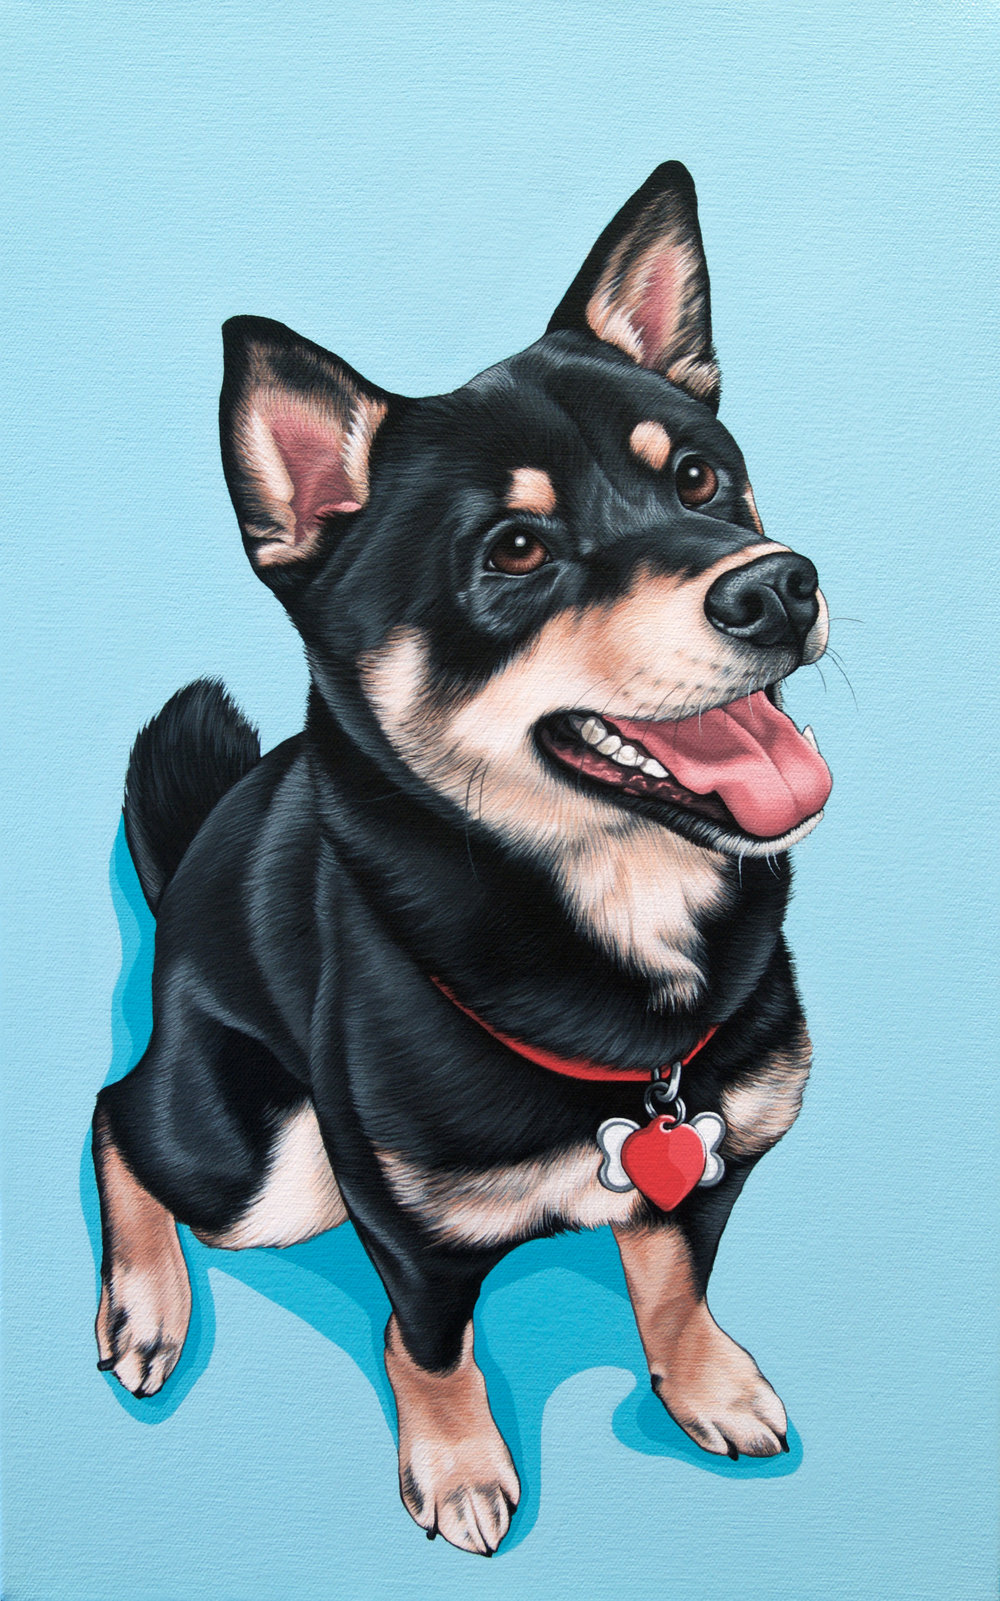 """Yoko"", latex enamel on canvas, 12"" x 18"", 2017"